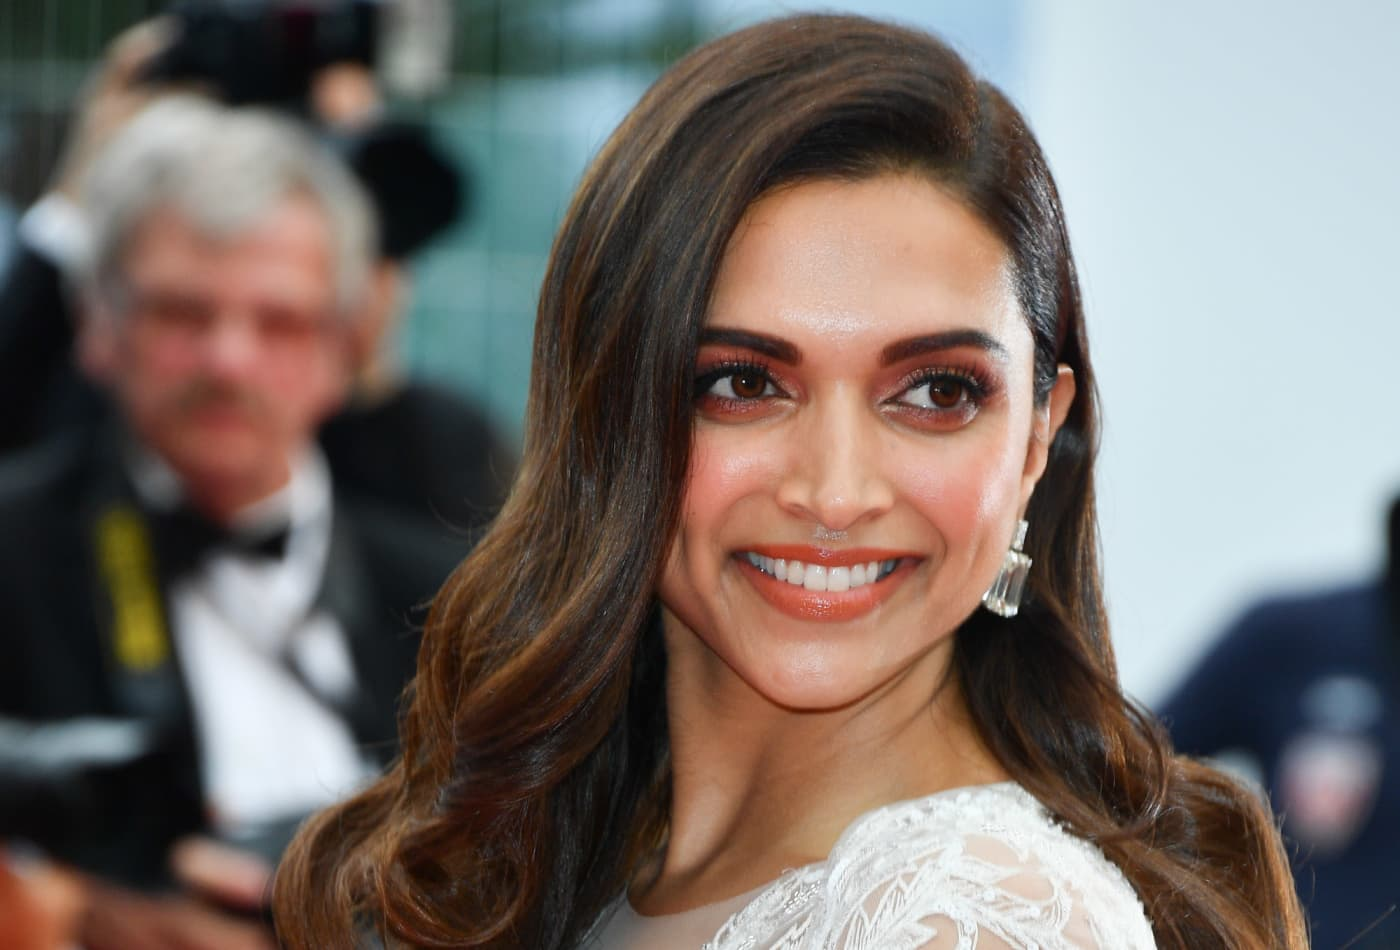 Bollywood's Deepika Padukone's battle with mental illness, depression